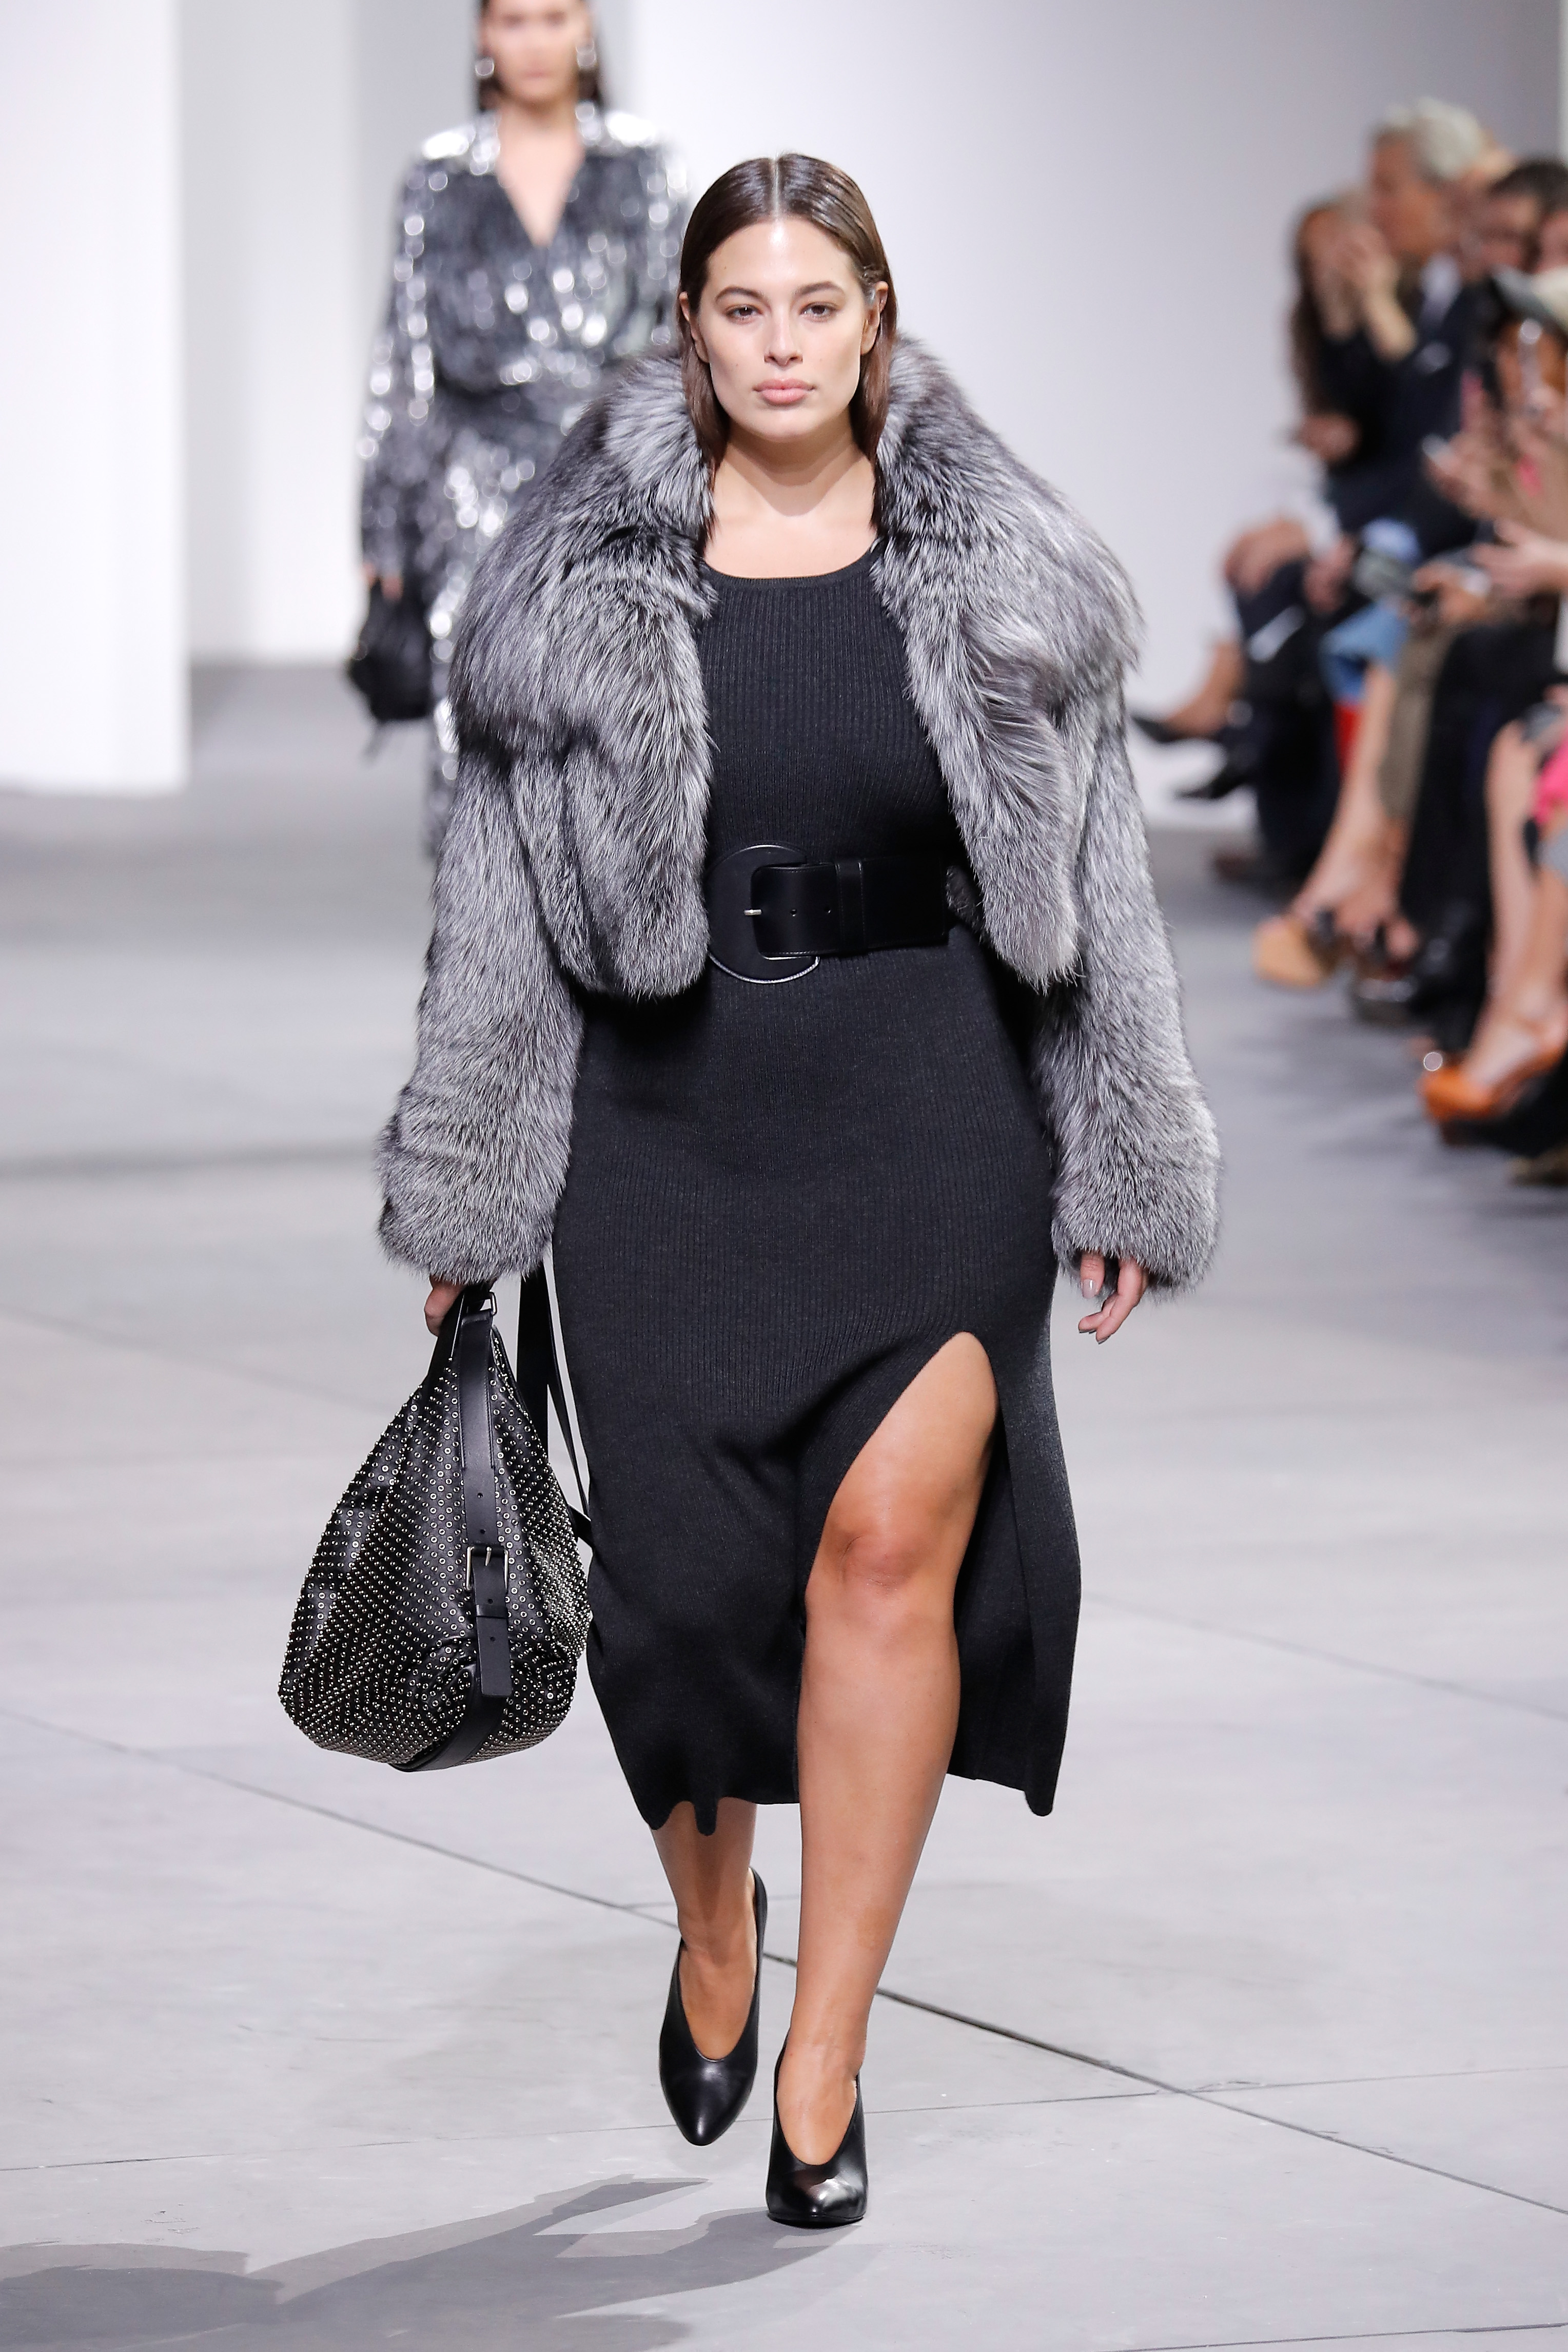 NEW YORK, NY - FEBRUARY 15: Model Ashley Graham walks the runway during the Michael Kors Collection Fall 2017 fashion show at Spring Studios on February 15, 2017 in New York City. (Photo by JP Yim/Getty Images for Michael Kors)